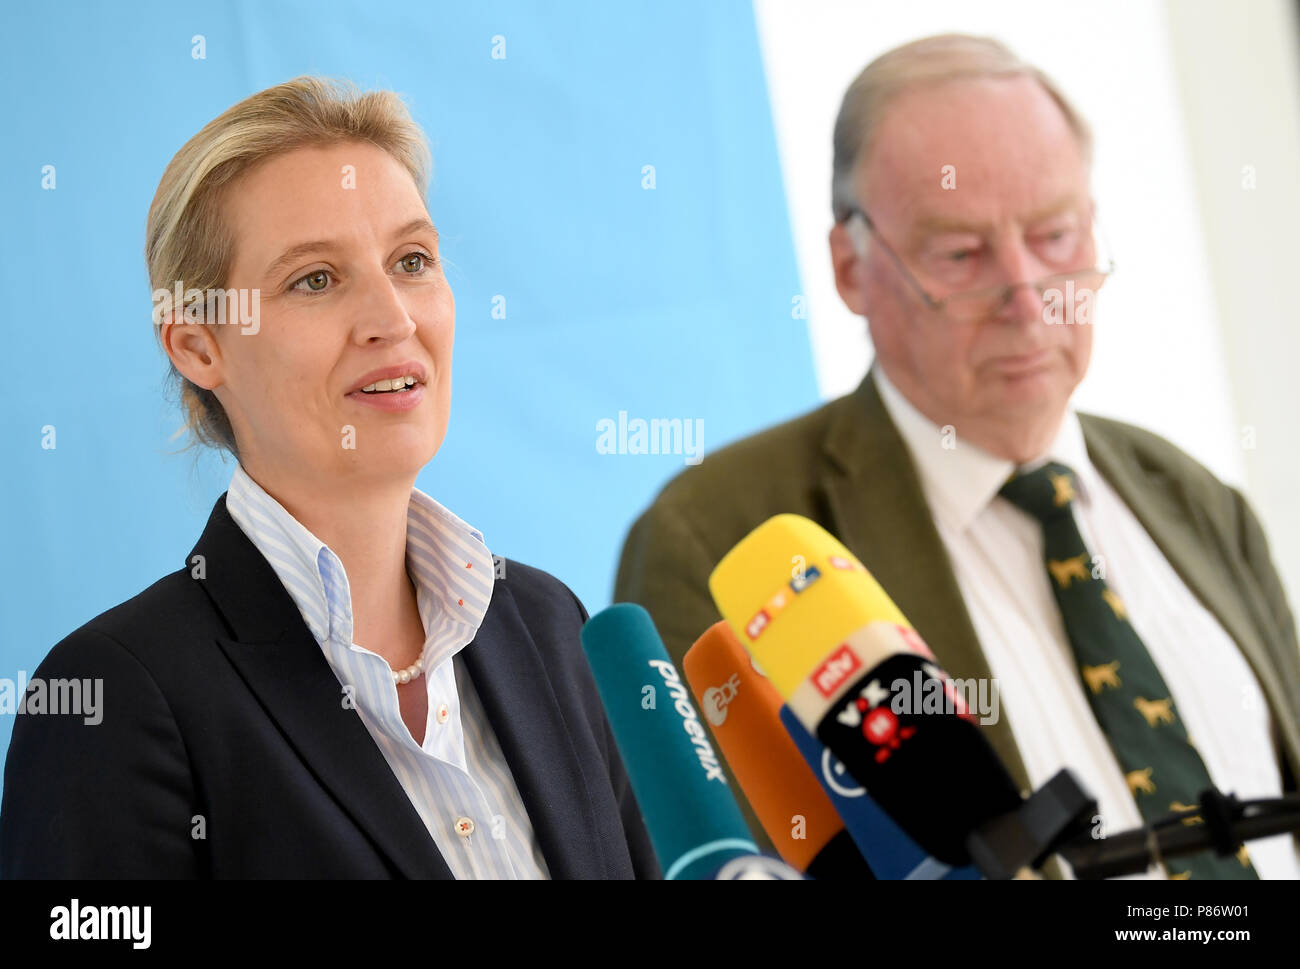 10 July 2018, Germany, Berlin: Alexander Gauland and Alice Weidel, parliamentary group leaders of the Alternative for Germany (AfD) in the German Bundestag, deliver statements during a press conference on the 'Masterplan Migration', which was previously presented by the German Minister of the Interior. Photo: Britta Pedersen/dpa-Zentralbild/dpa - Stock Image